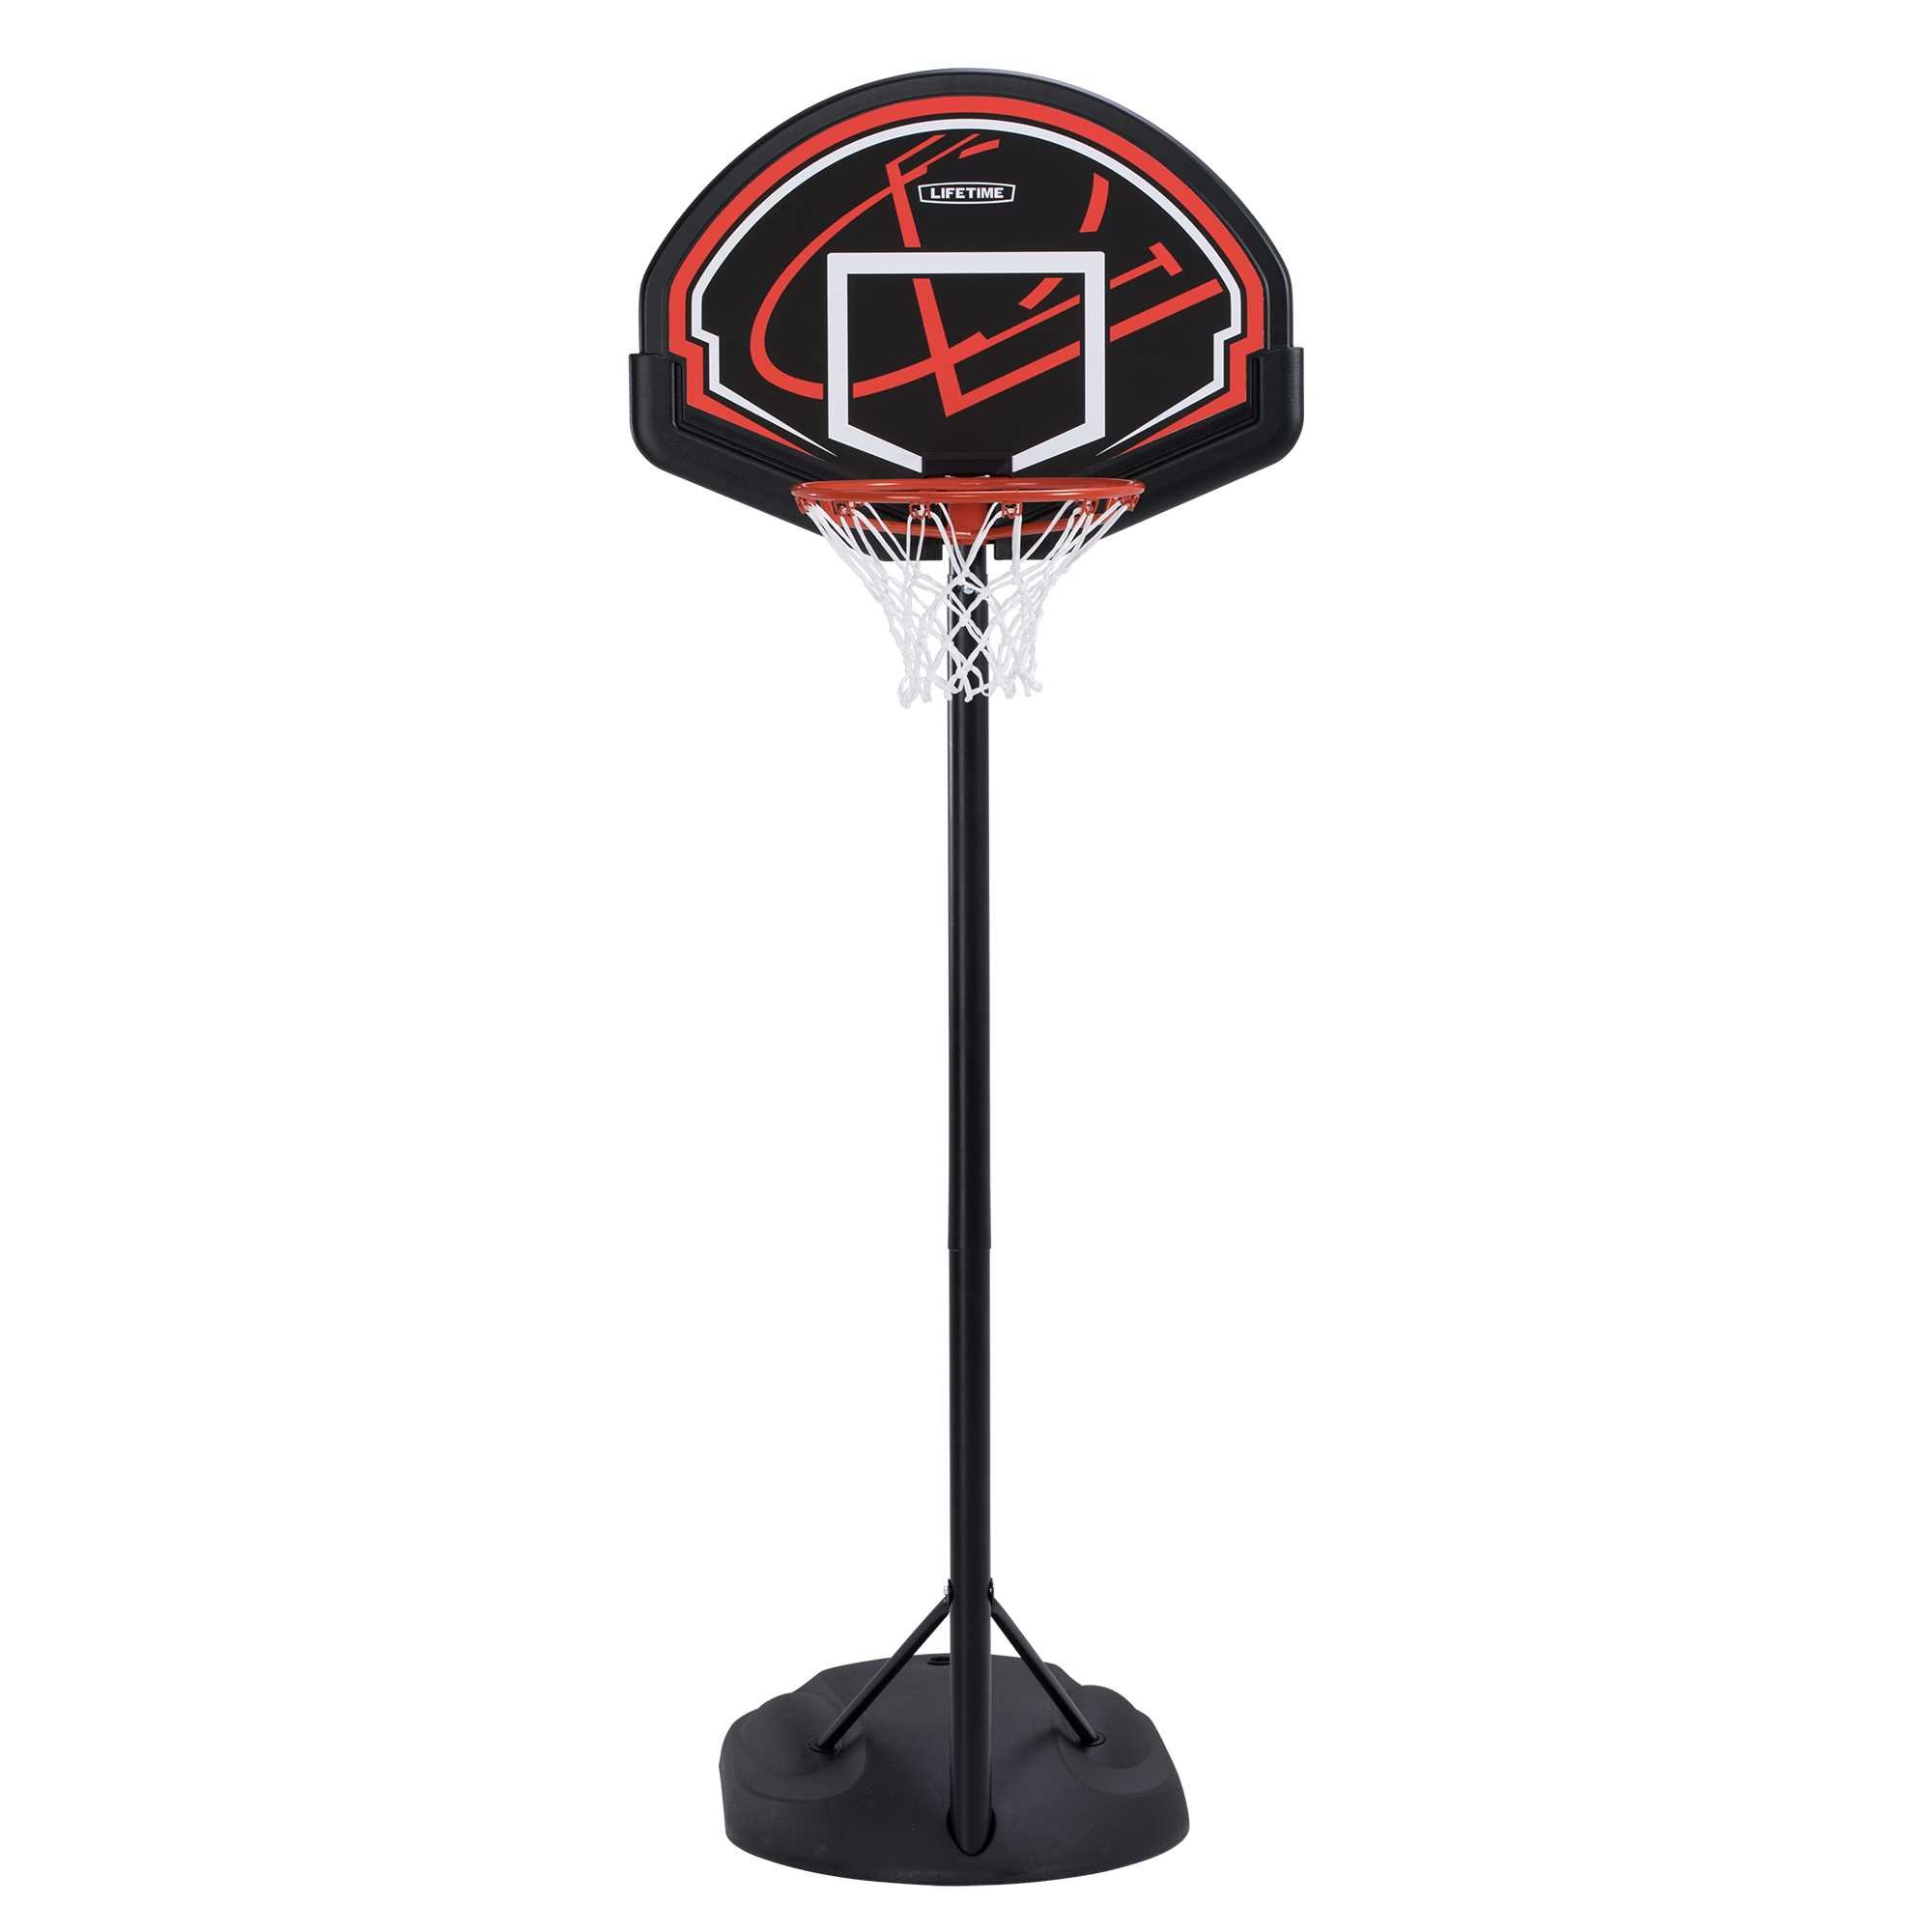 Lifetime 90022 Youth Height Adjustable Portable Basketball System